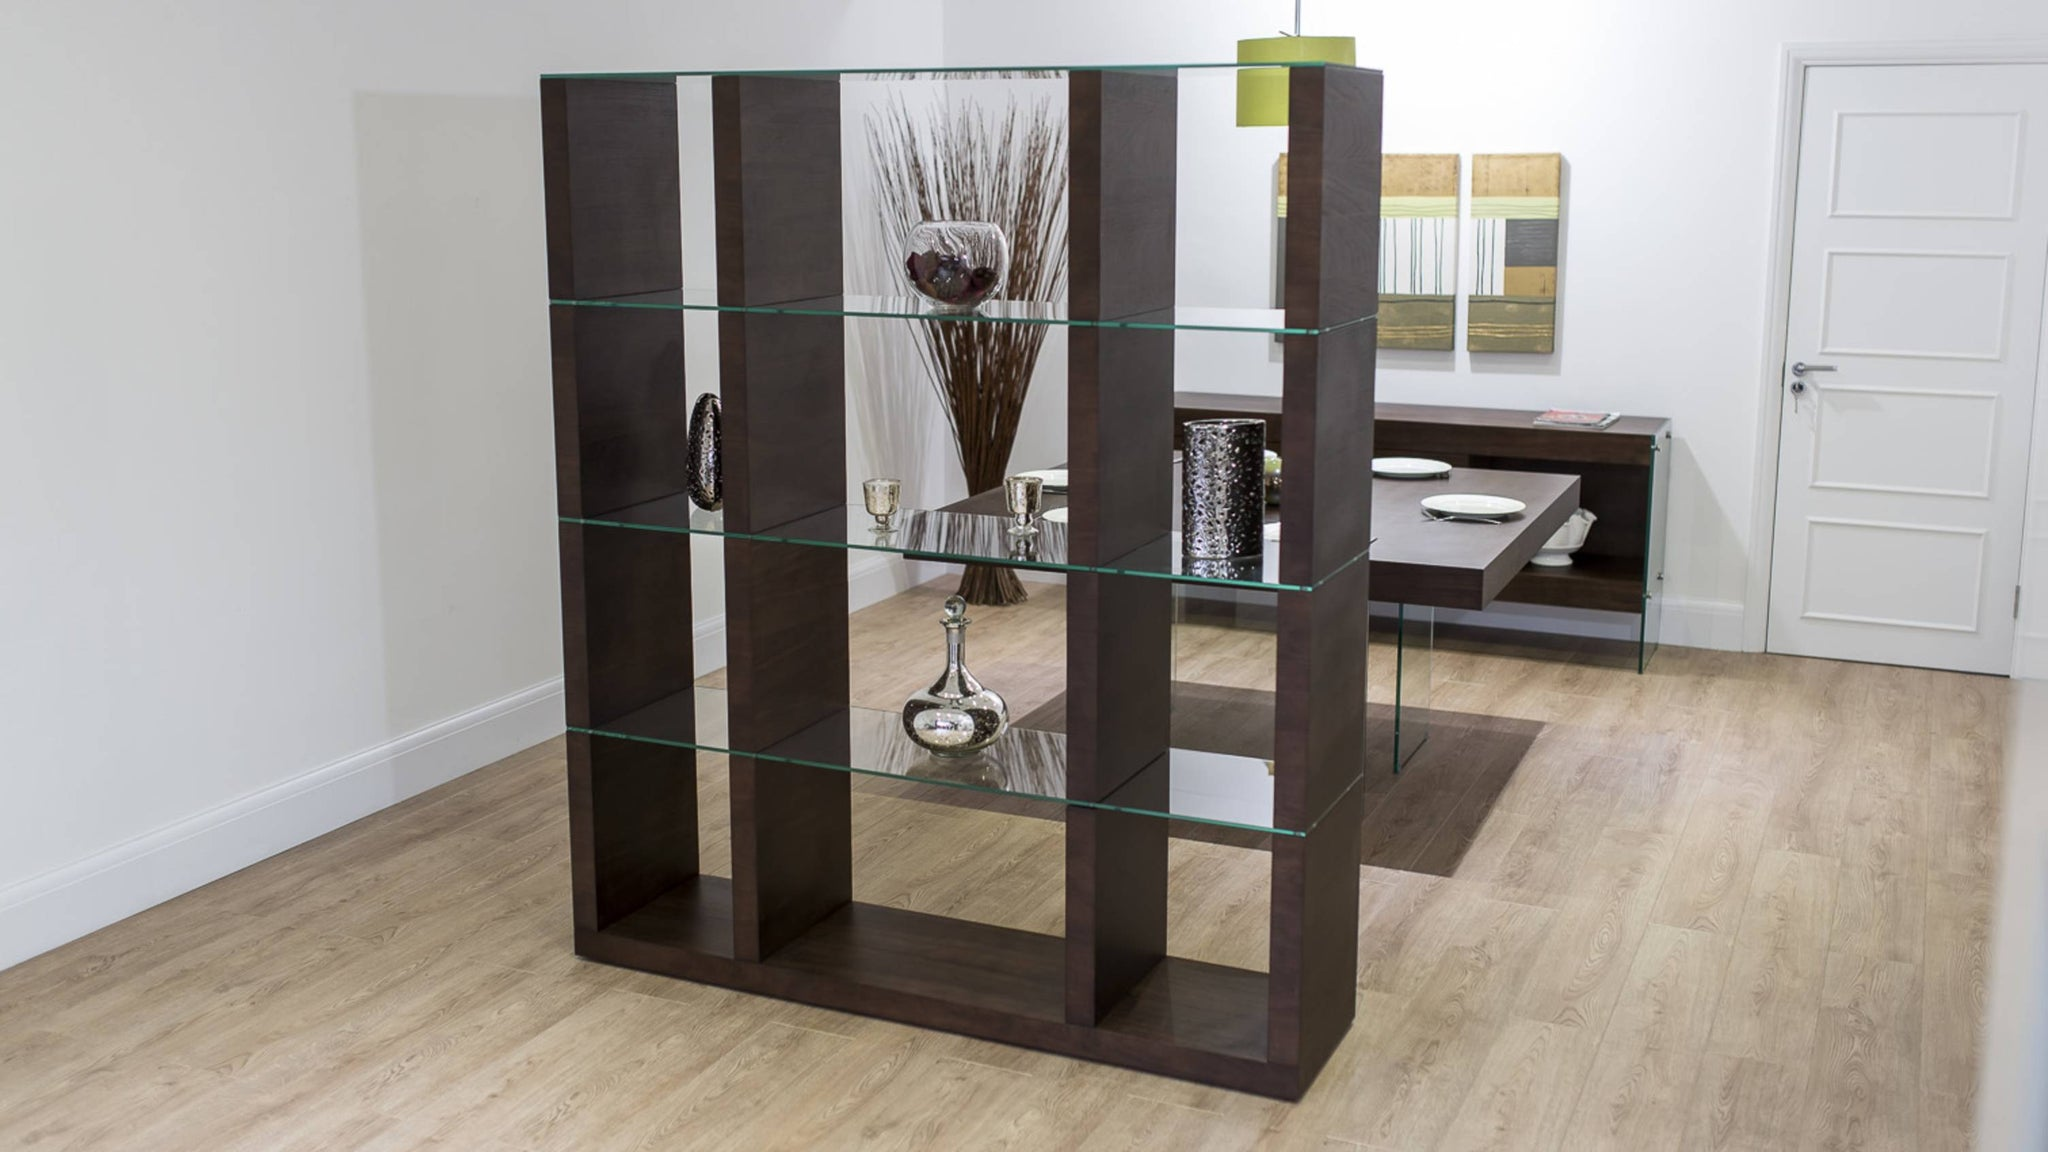 Contemporary Wooden Room Divider with Glass Shelves